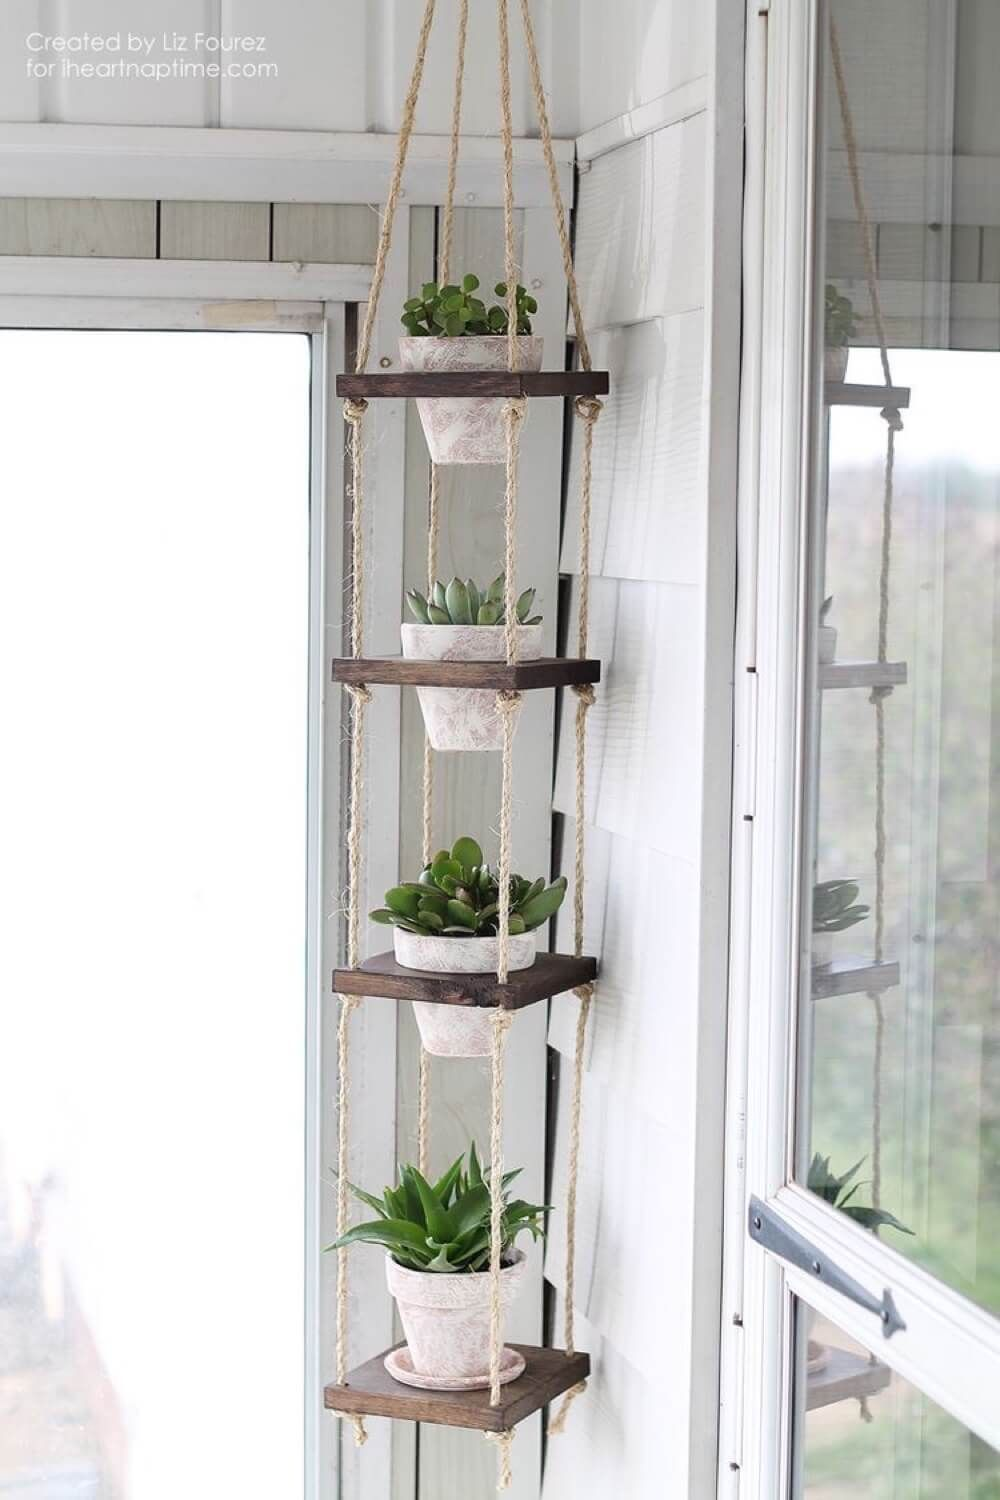 34 Reclaimed Wood DIY Projects You Can Make At Home | Plant ...